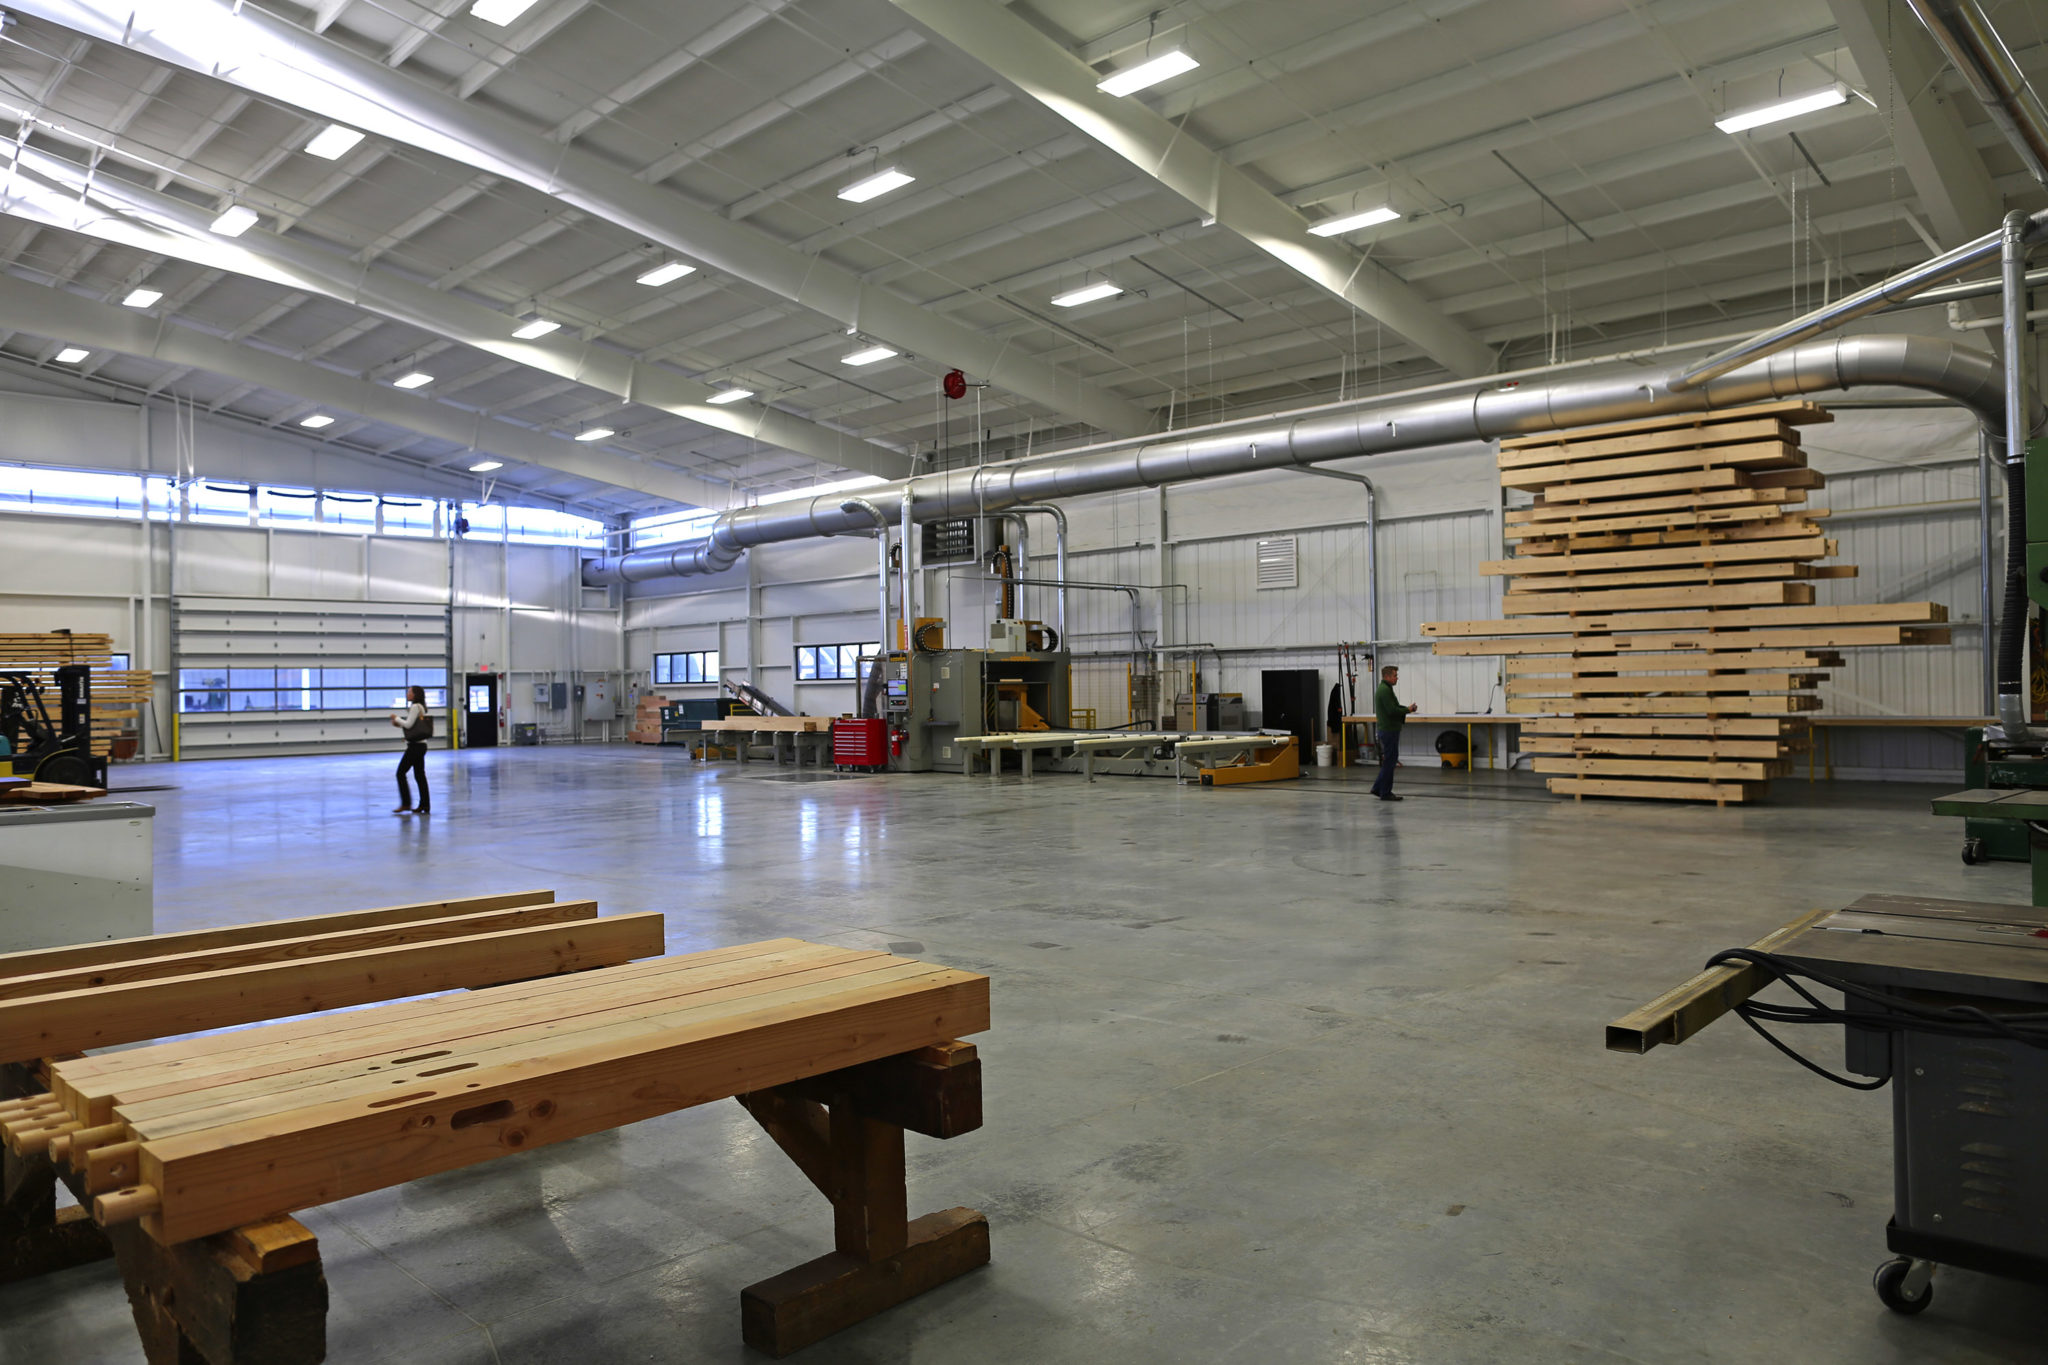 Welcome To Our Facility - A Timber Frame Tour